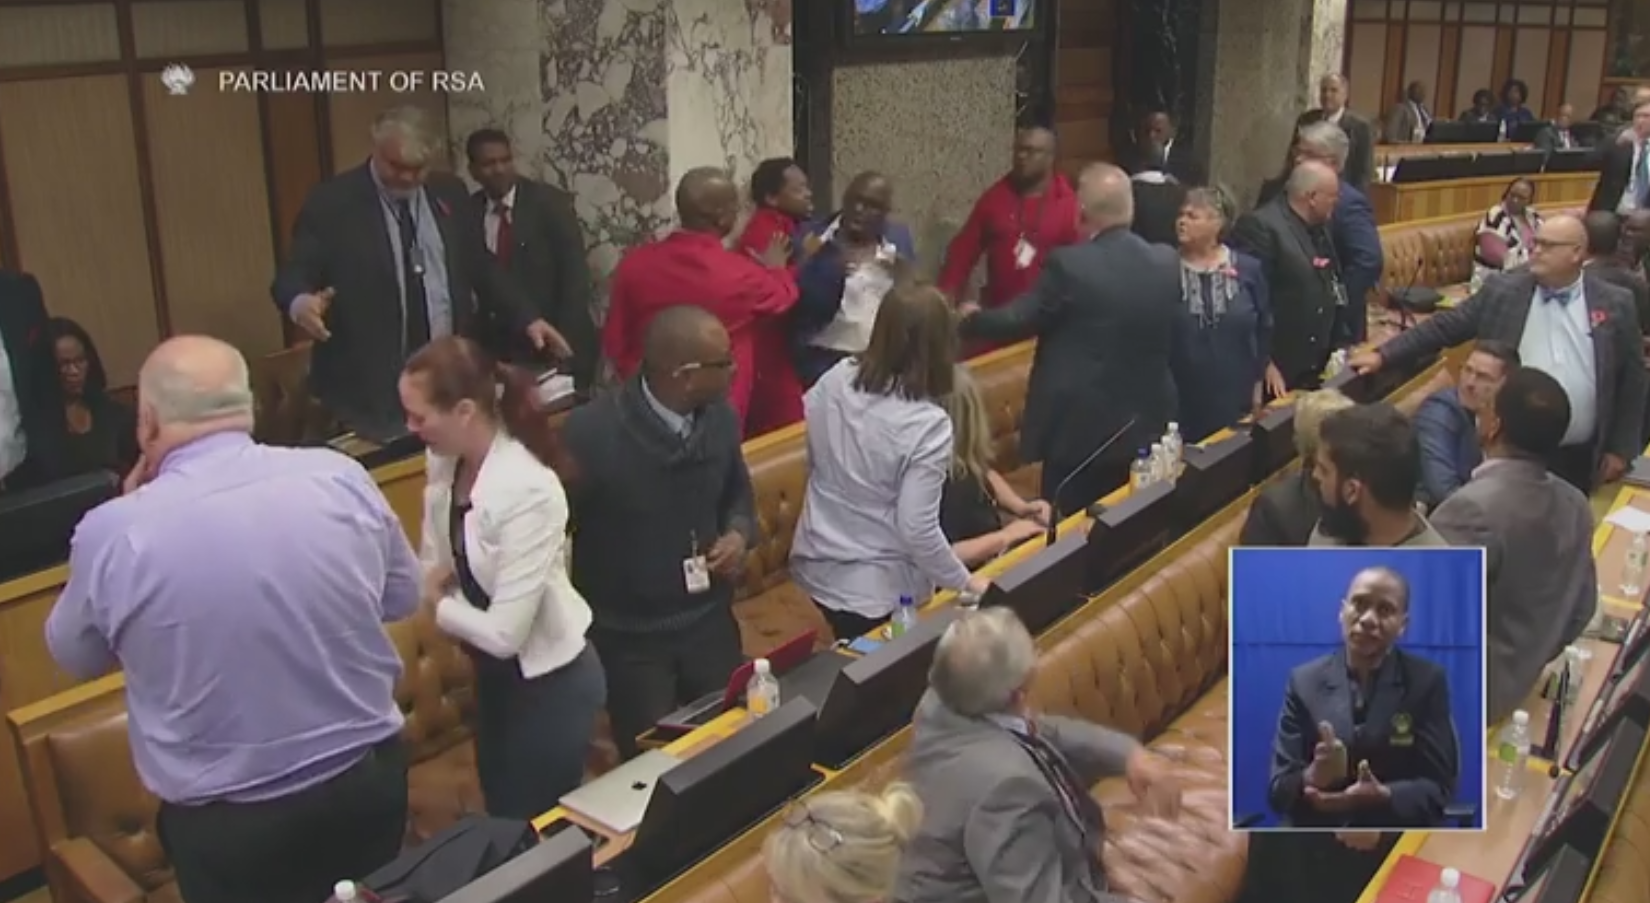 Watch: Fight erupts in South African parliament after black lawmaker calls white colleague racist